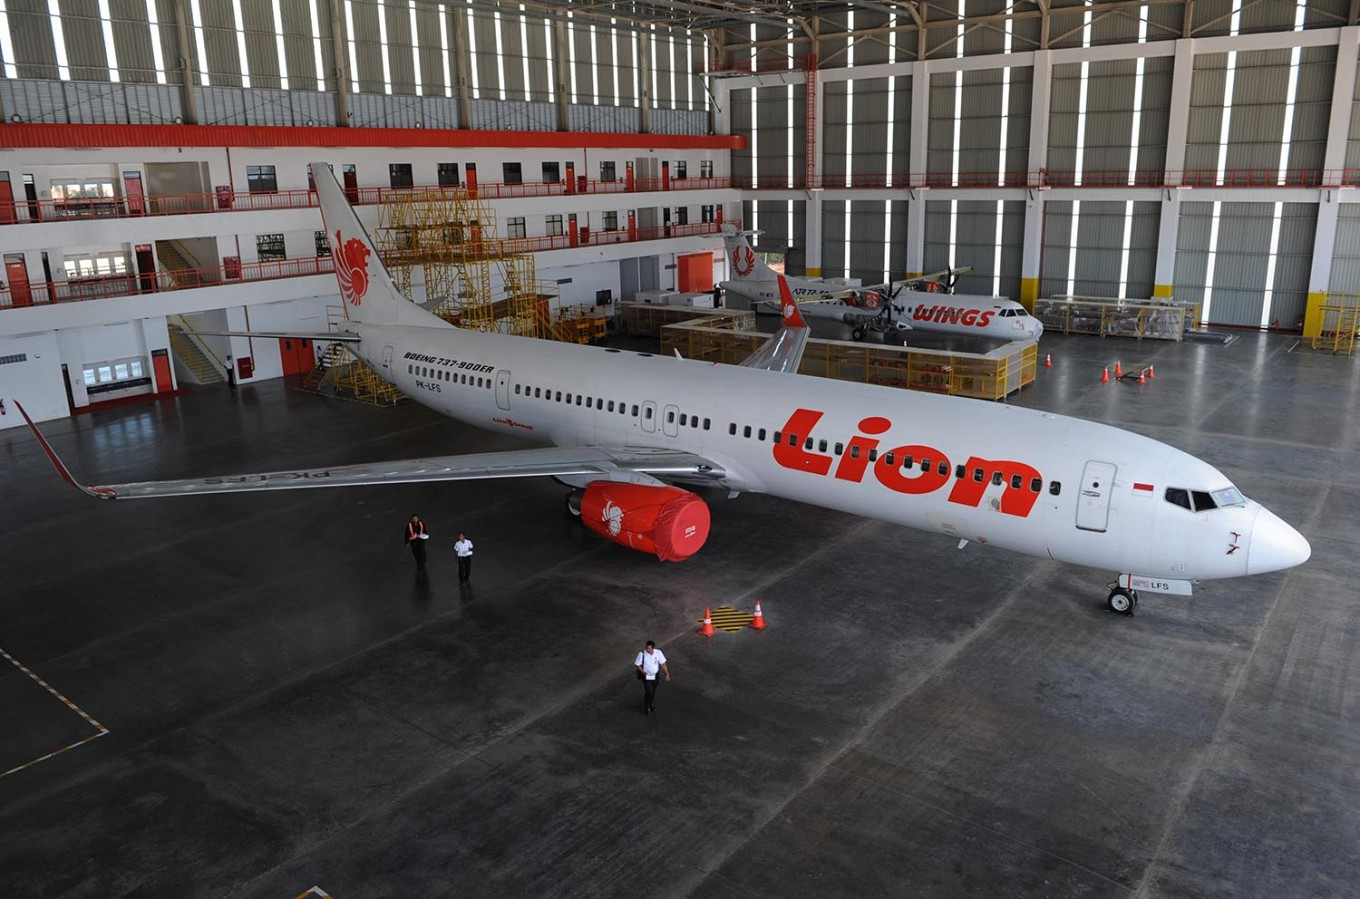 Lion Air Plane Skids off Runway at Pontianak Airport